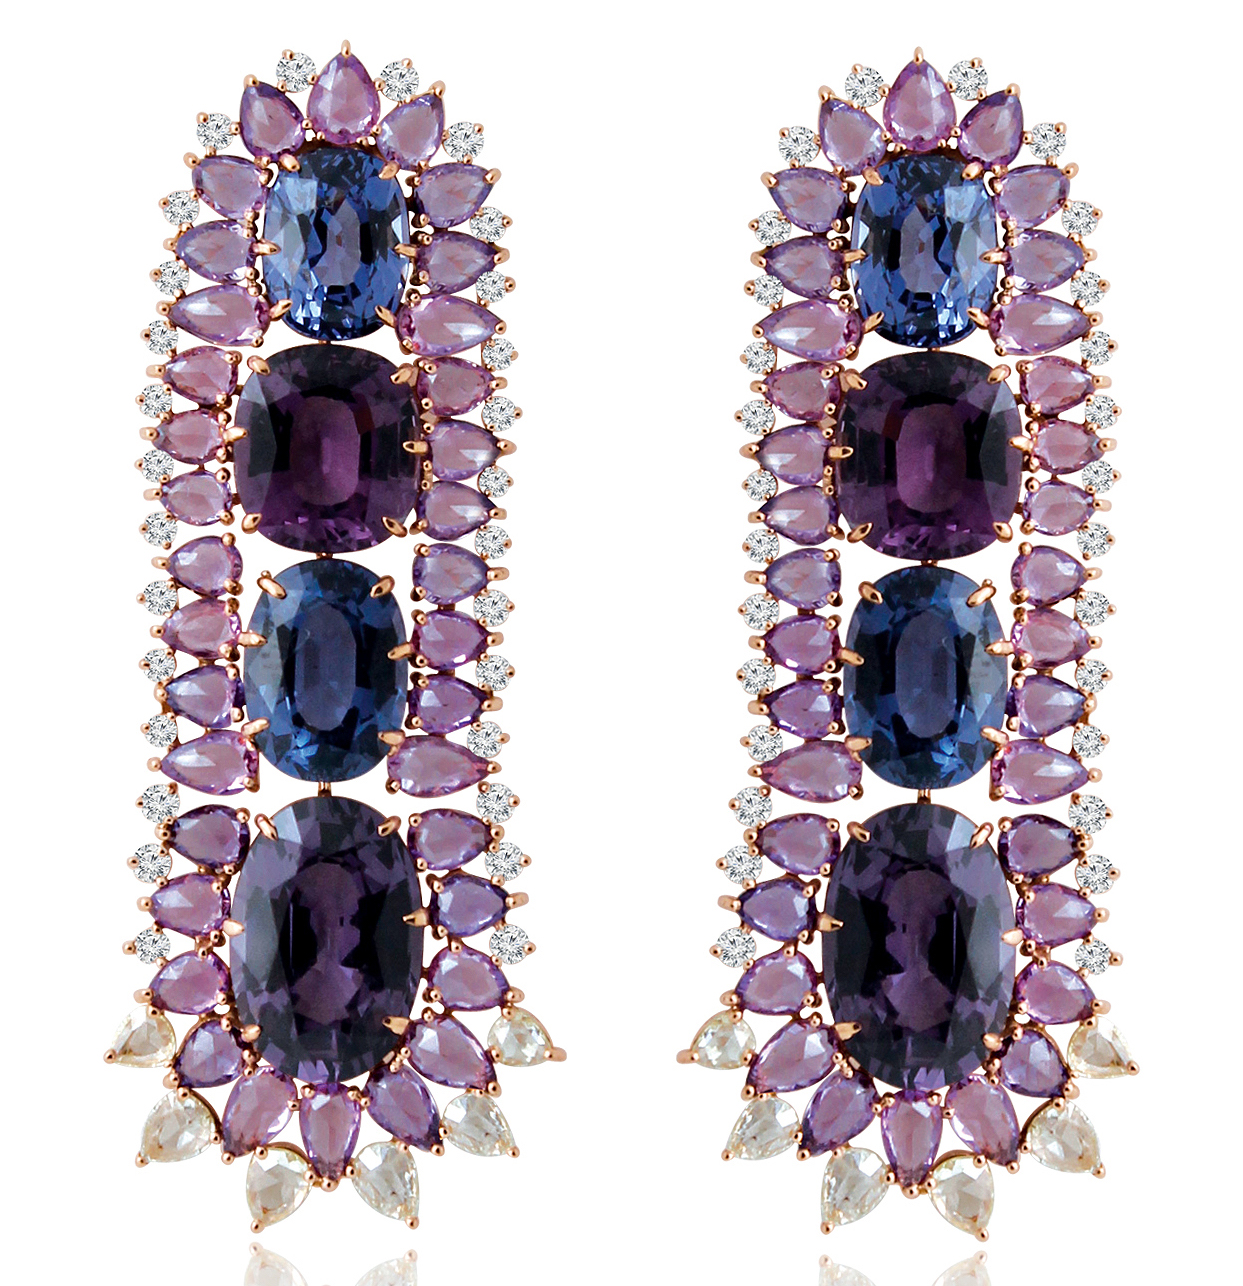 Sutra purple spinel spie earrings | JCK On Your Market